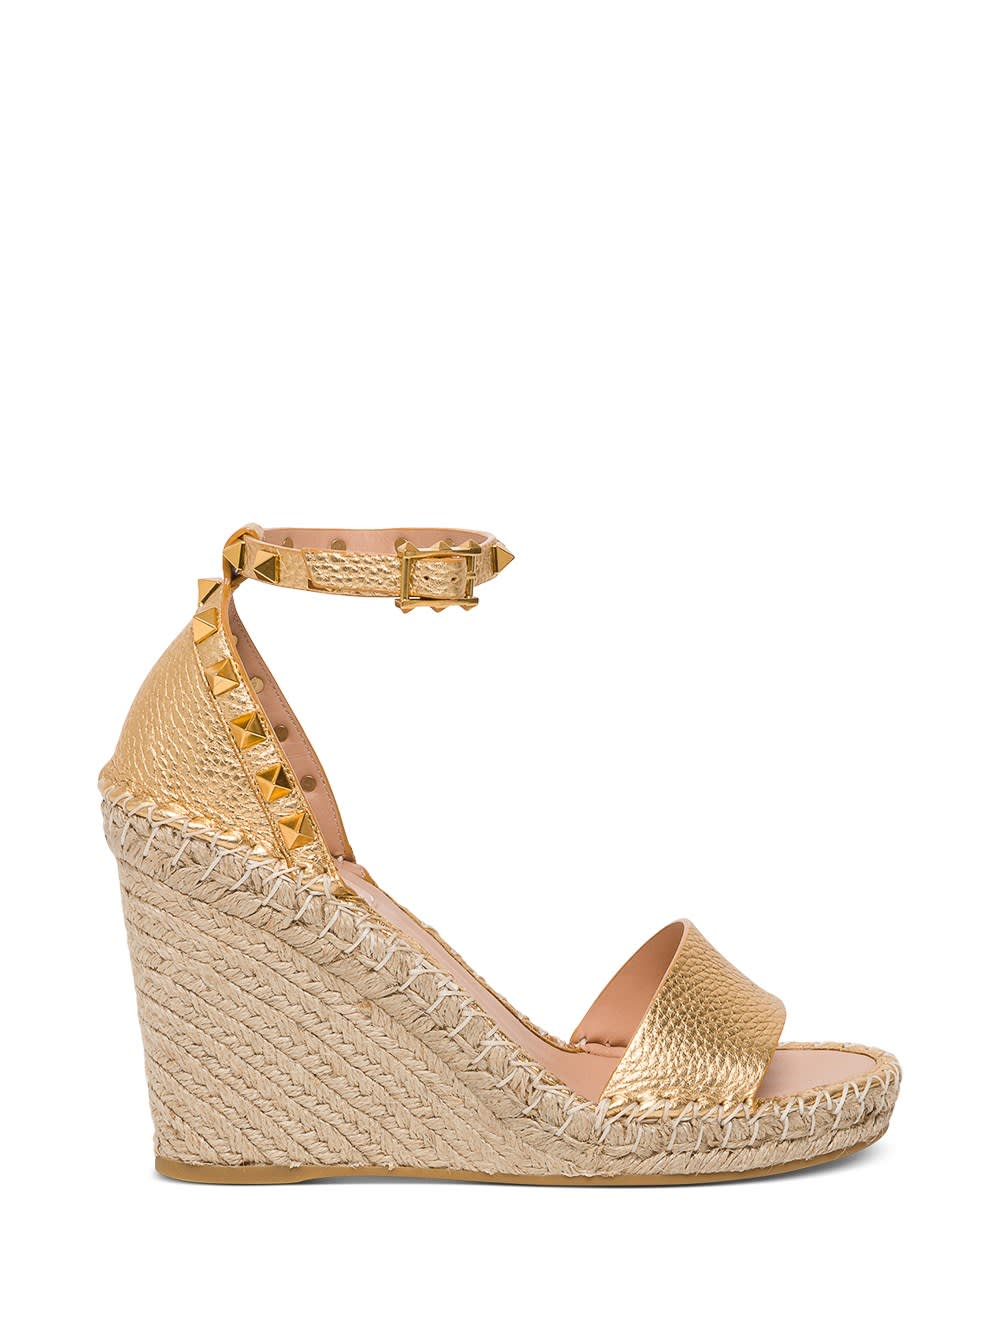 Valentino ROCKSTUD DOUBLE WEDGE SANDAL IN LAMINATED LEATHER